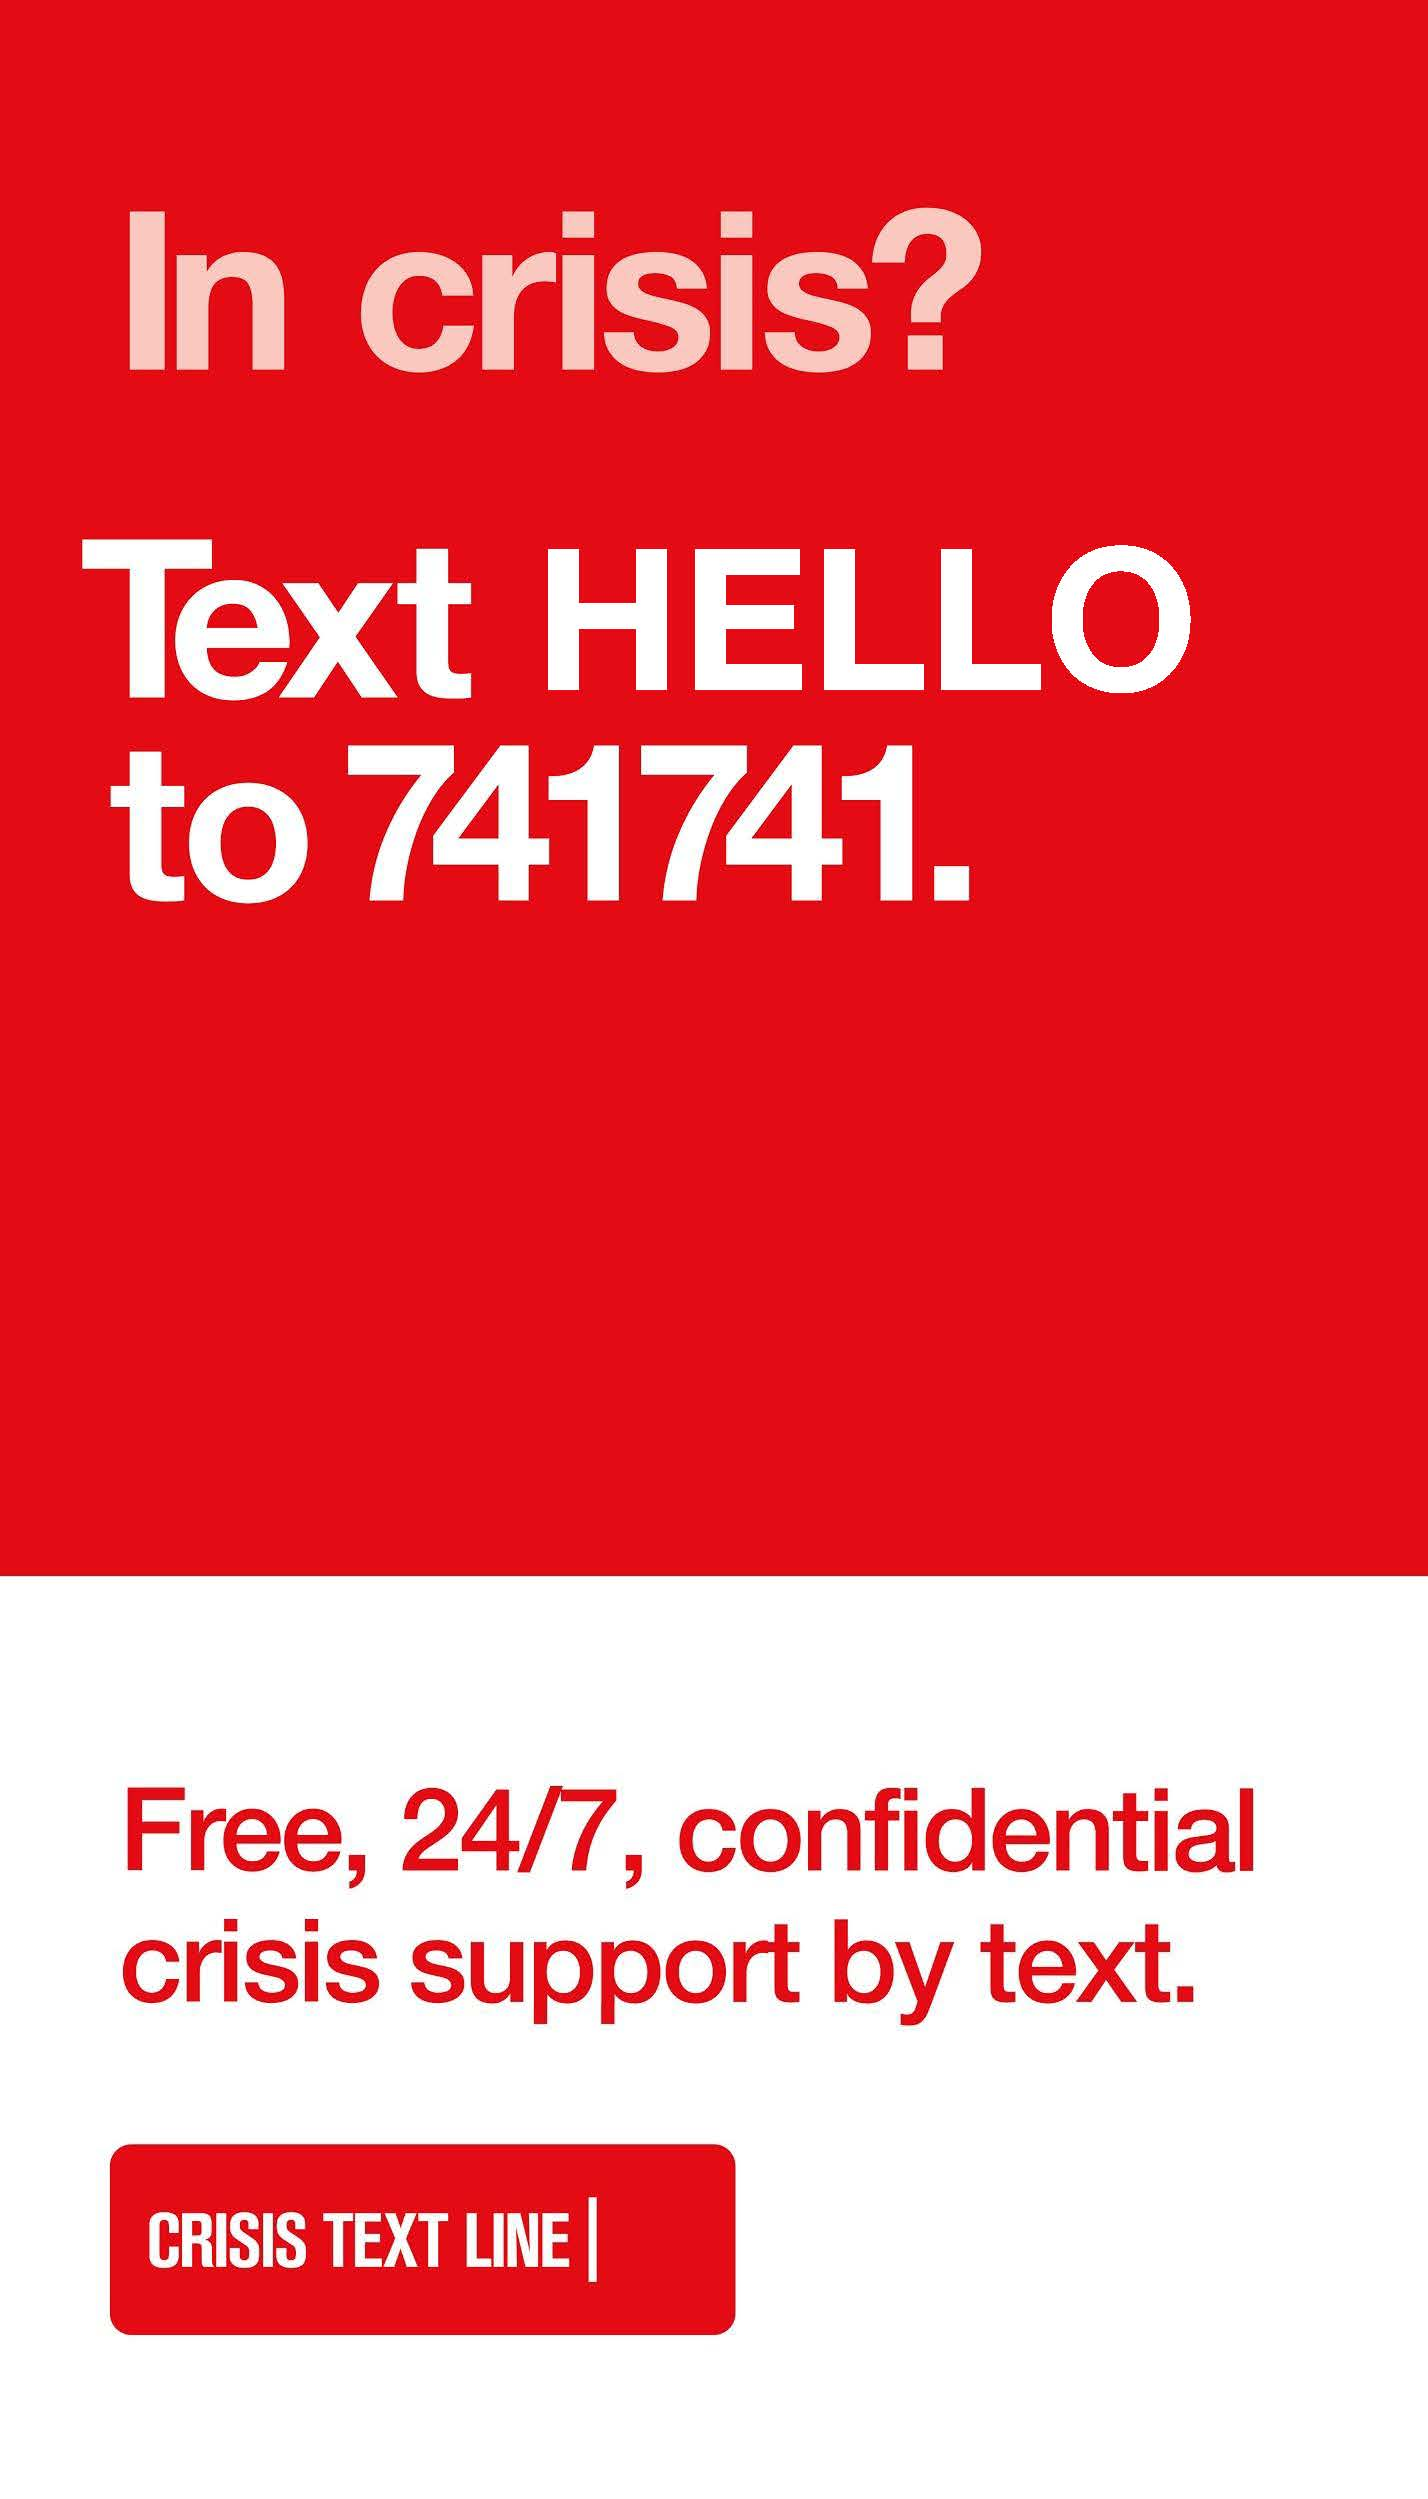 In Crisis? Text HELLO to 741741. Free, 24/7, confidential crisis support by text. Crisis Text Line.